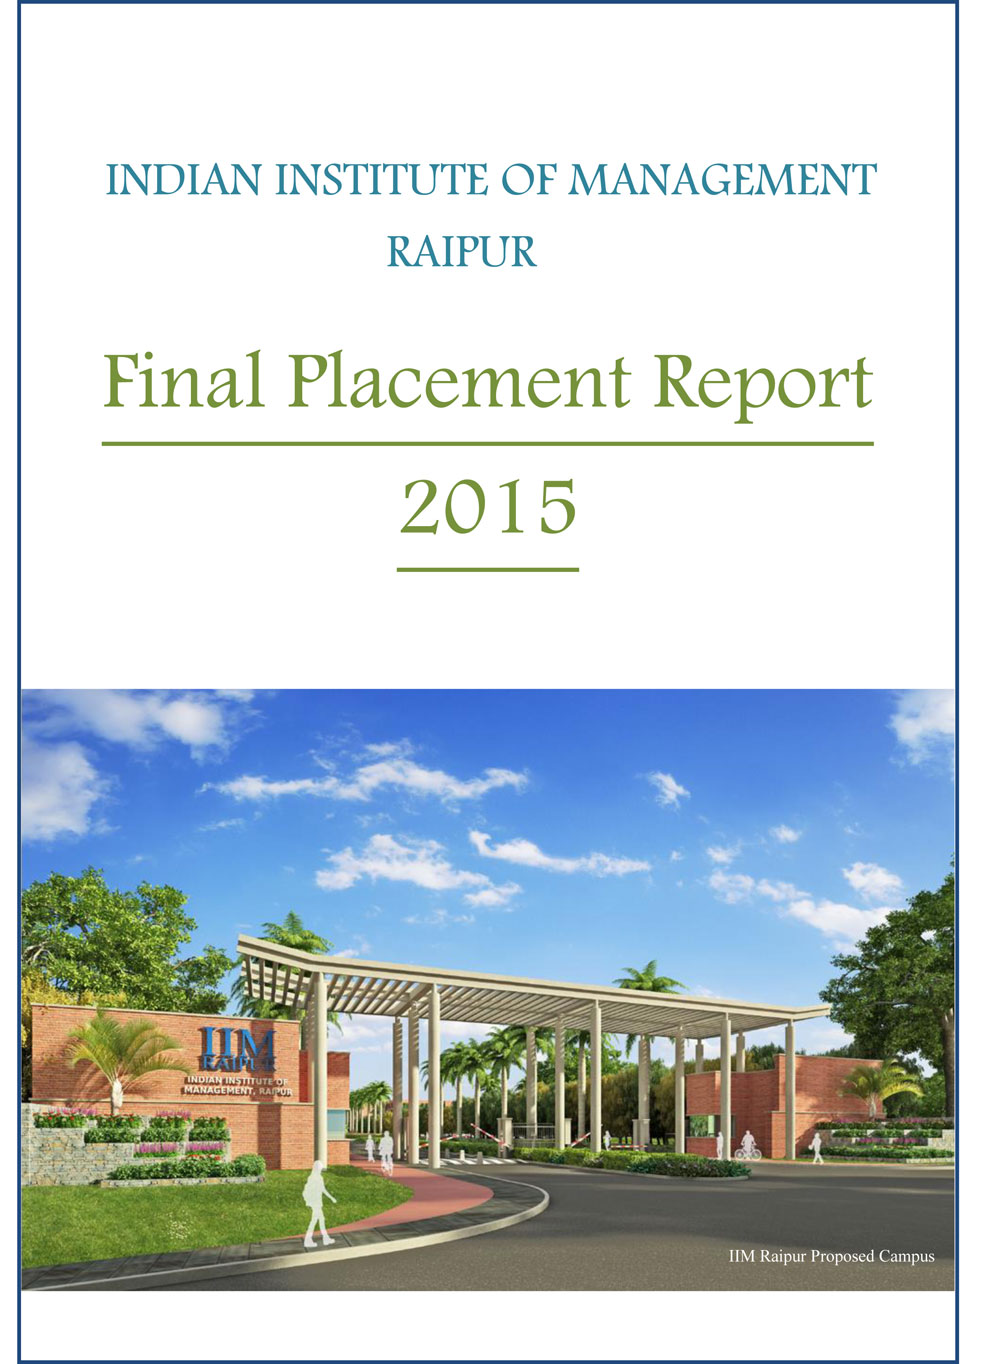 Final Placement Report 2015 at IIM Raipur